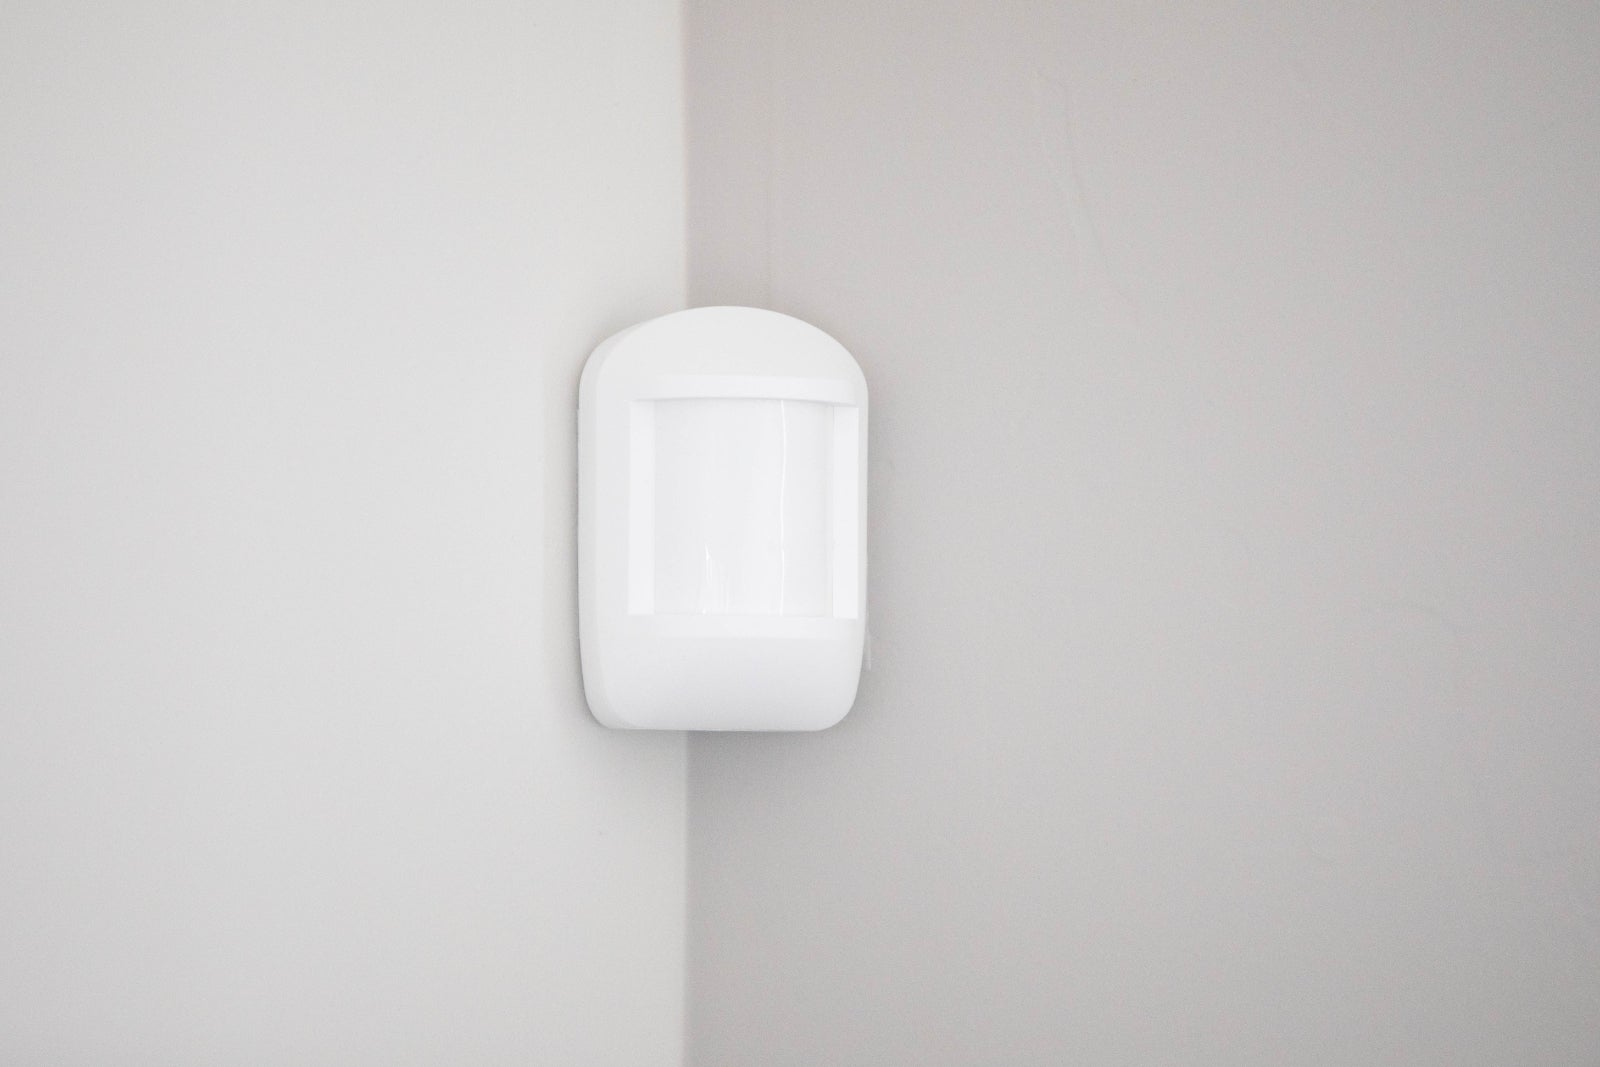 Cove Home Security Review In Search Of The Simplest